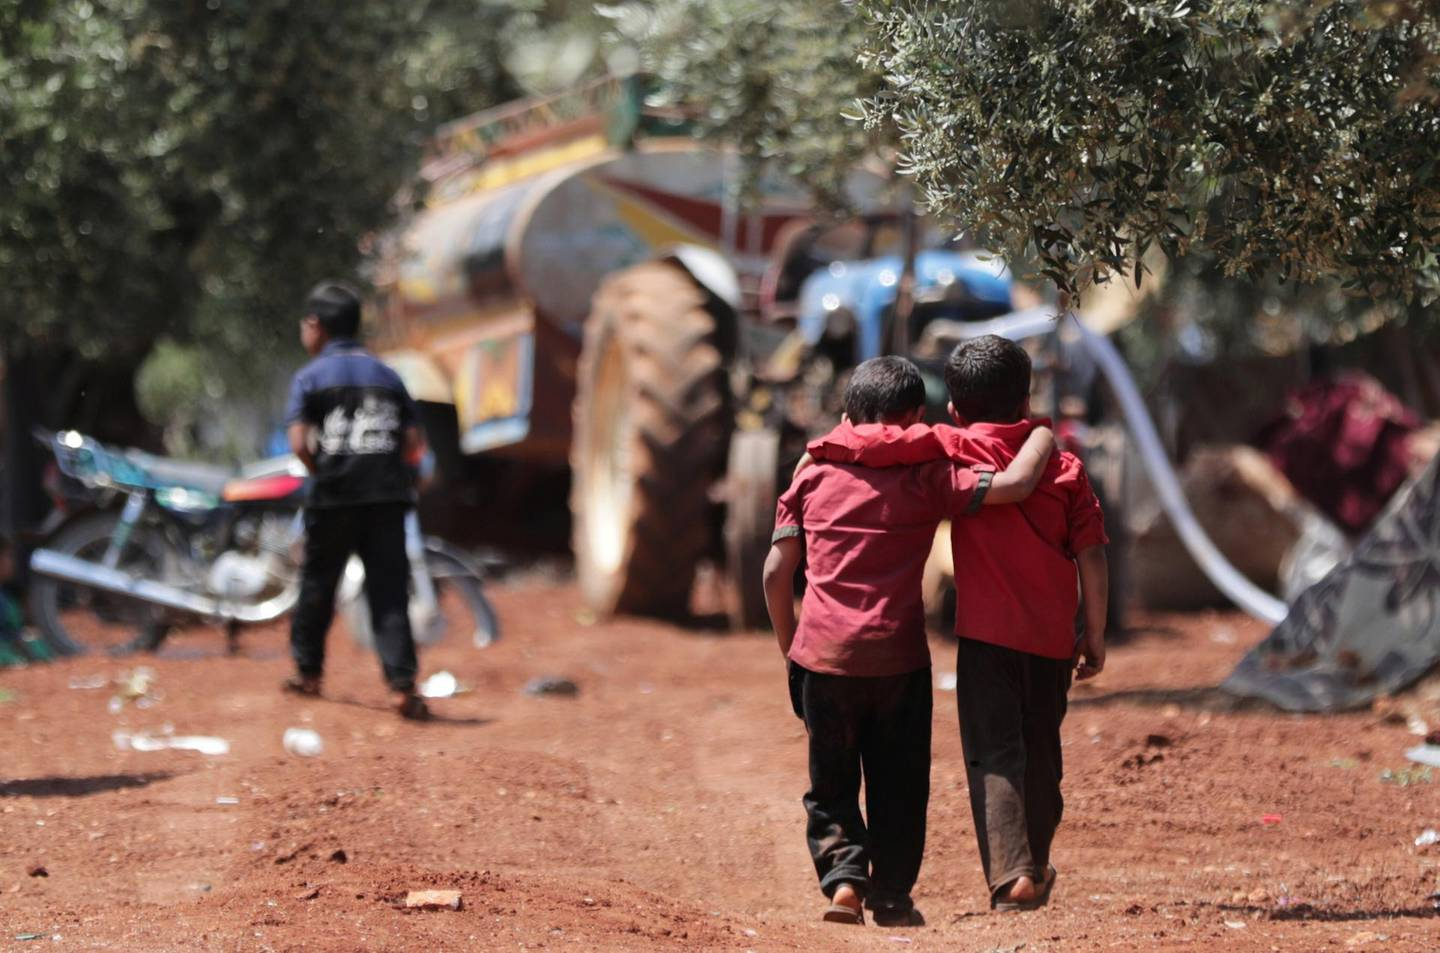 Displaced Syrian children walk together in an olive grove at Atmeh town, Idlib province, Syria May 15, 2019. Picture taken May 15, 2019. REUTERS/Khalil Ashawi